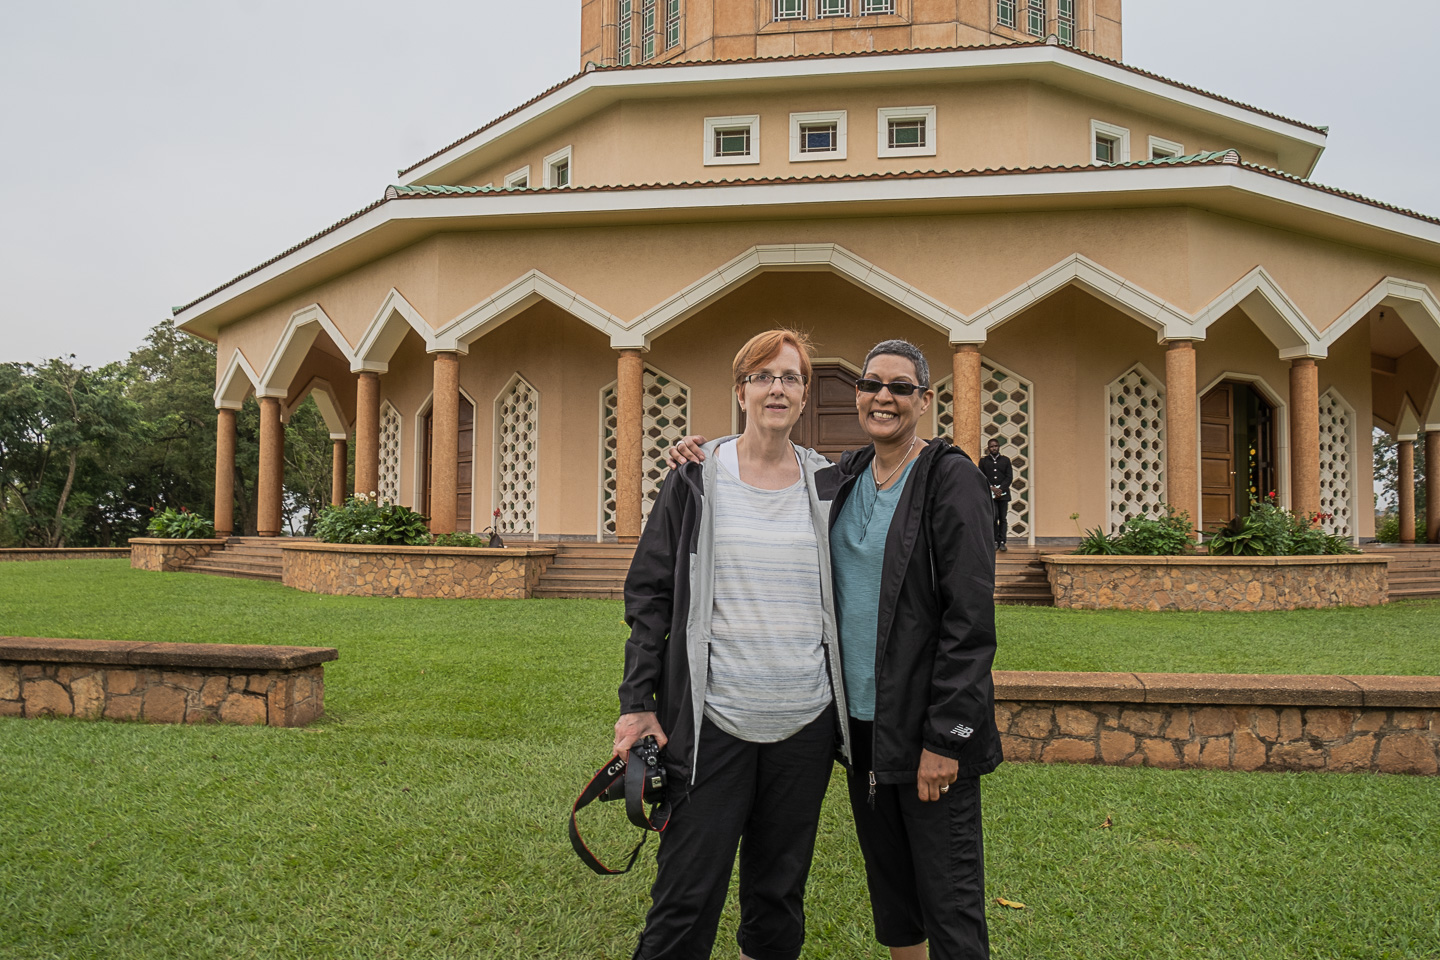 Kim and I in front of the Bahai House of Worship